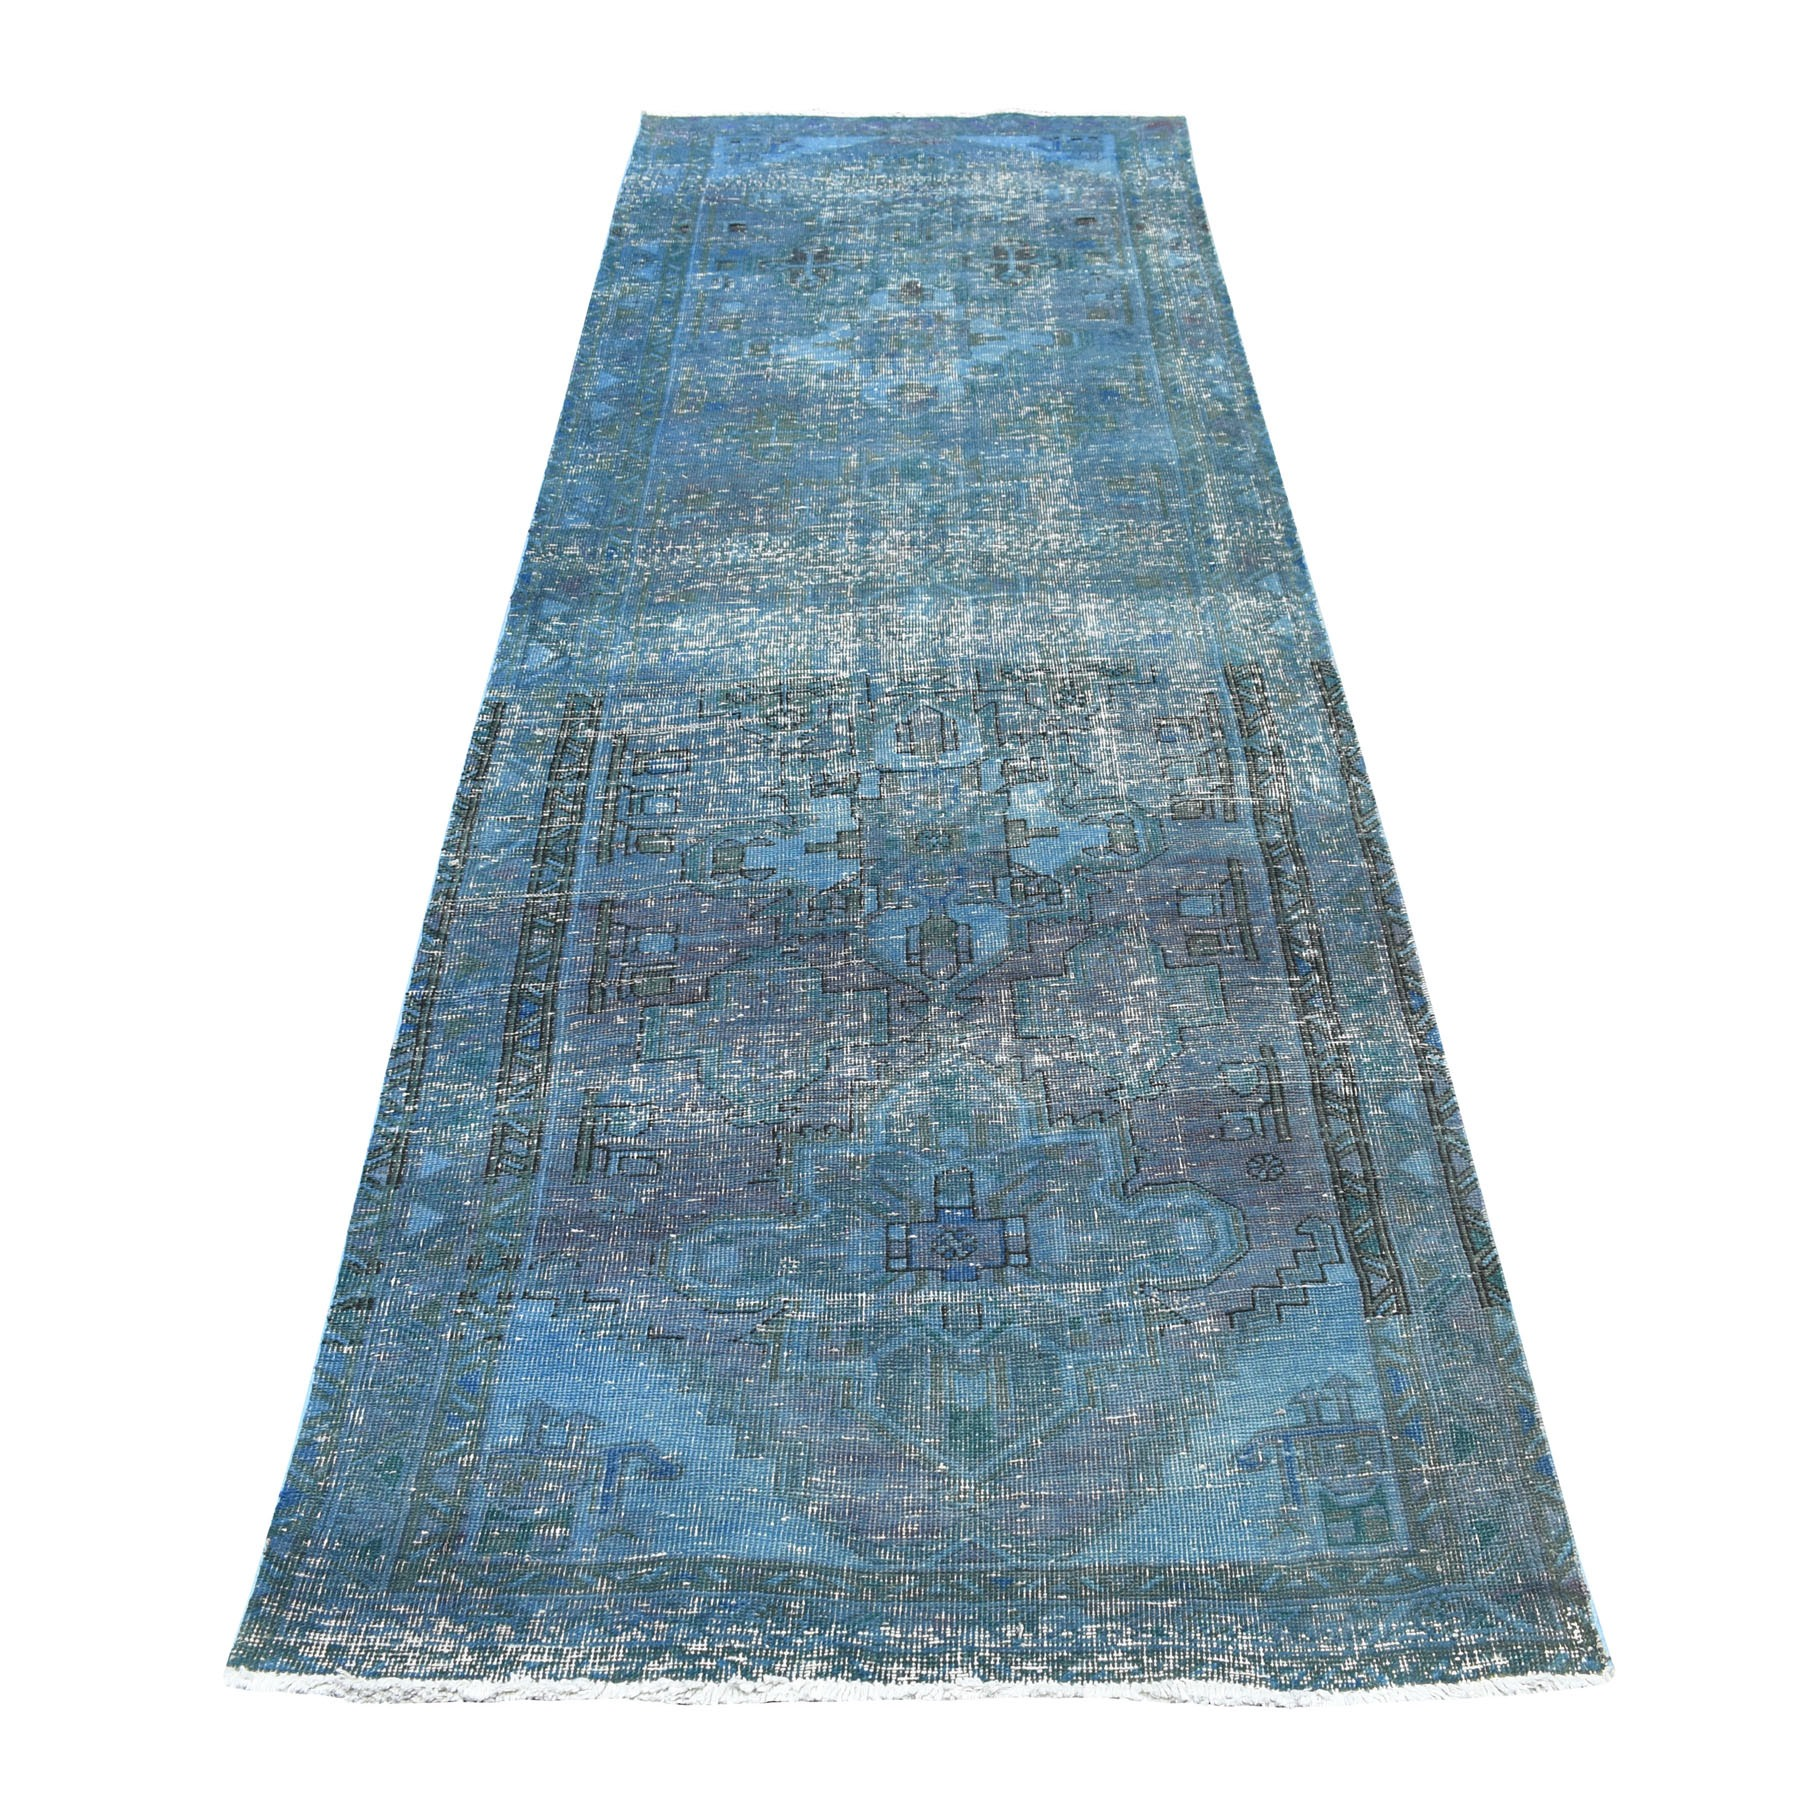 "3'5""x10'3"" Blue Vintage And Worn Down Wide Runner Overdyed Persian Qashqai Hand Woven Bohemian Rug"